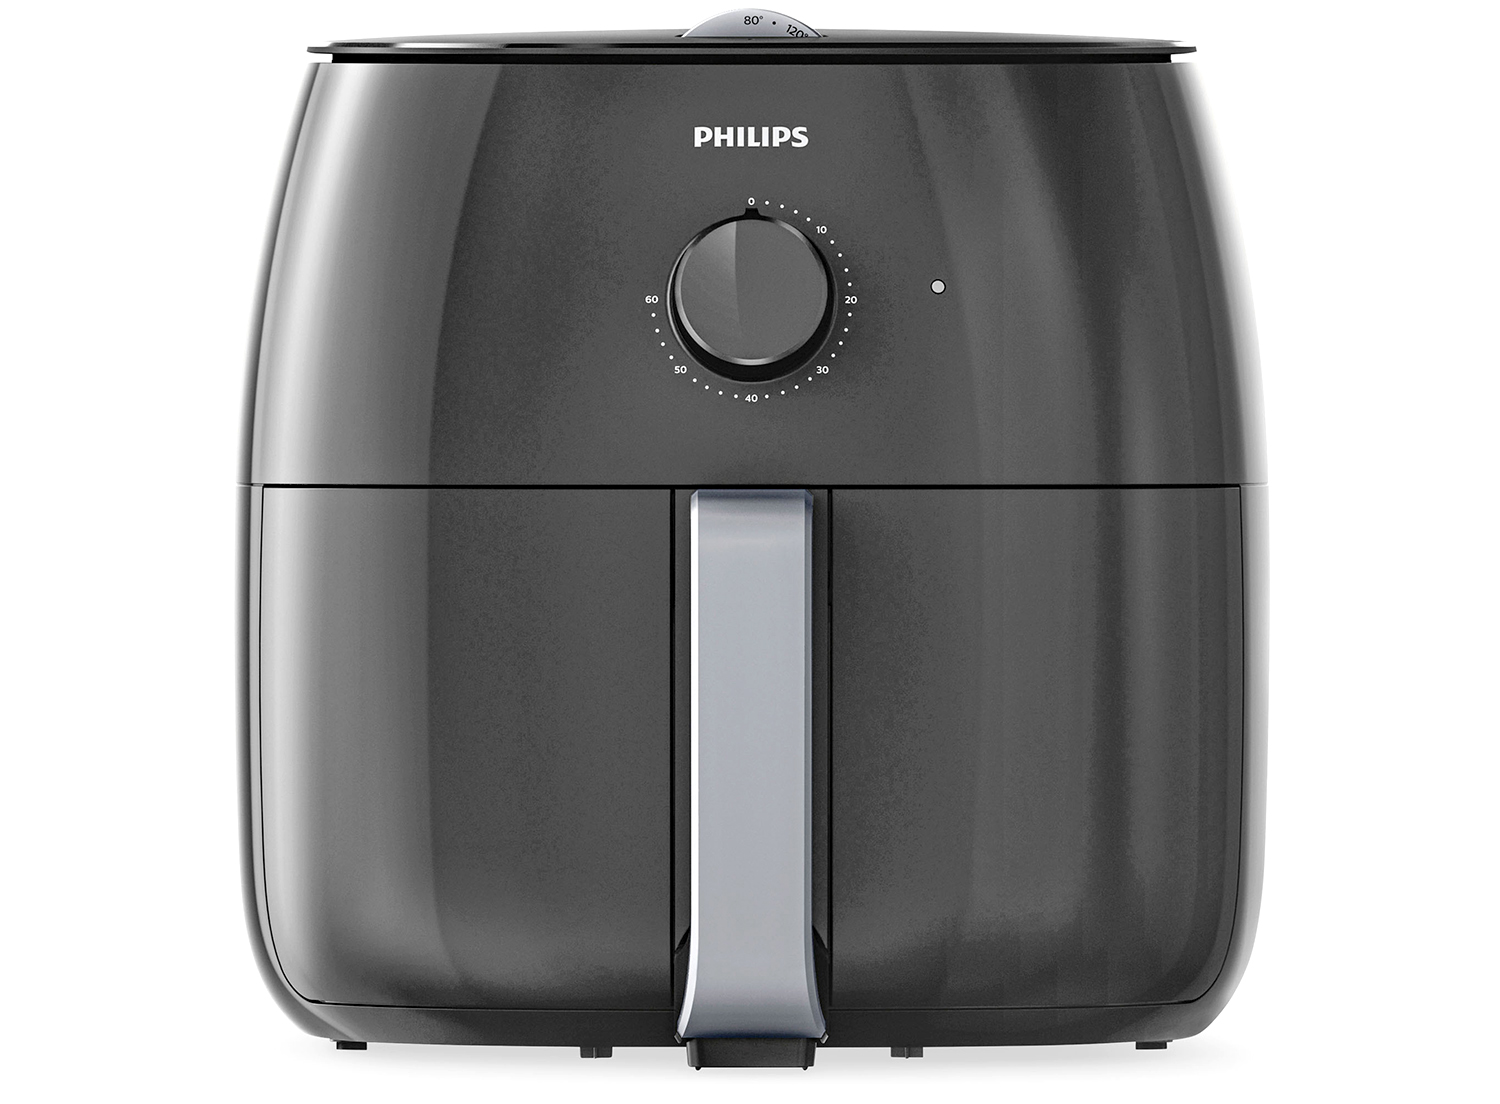 philips air fryer xxl product